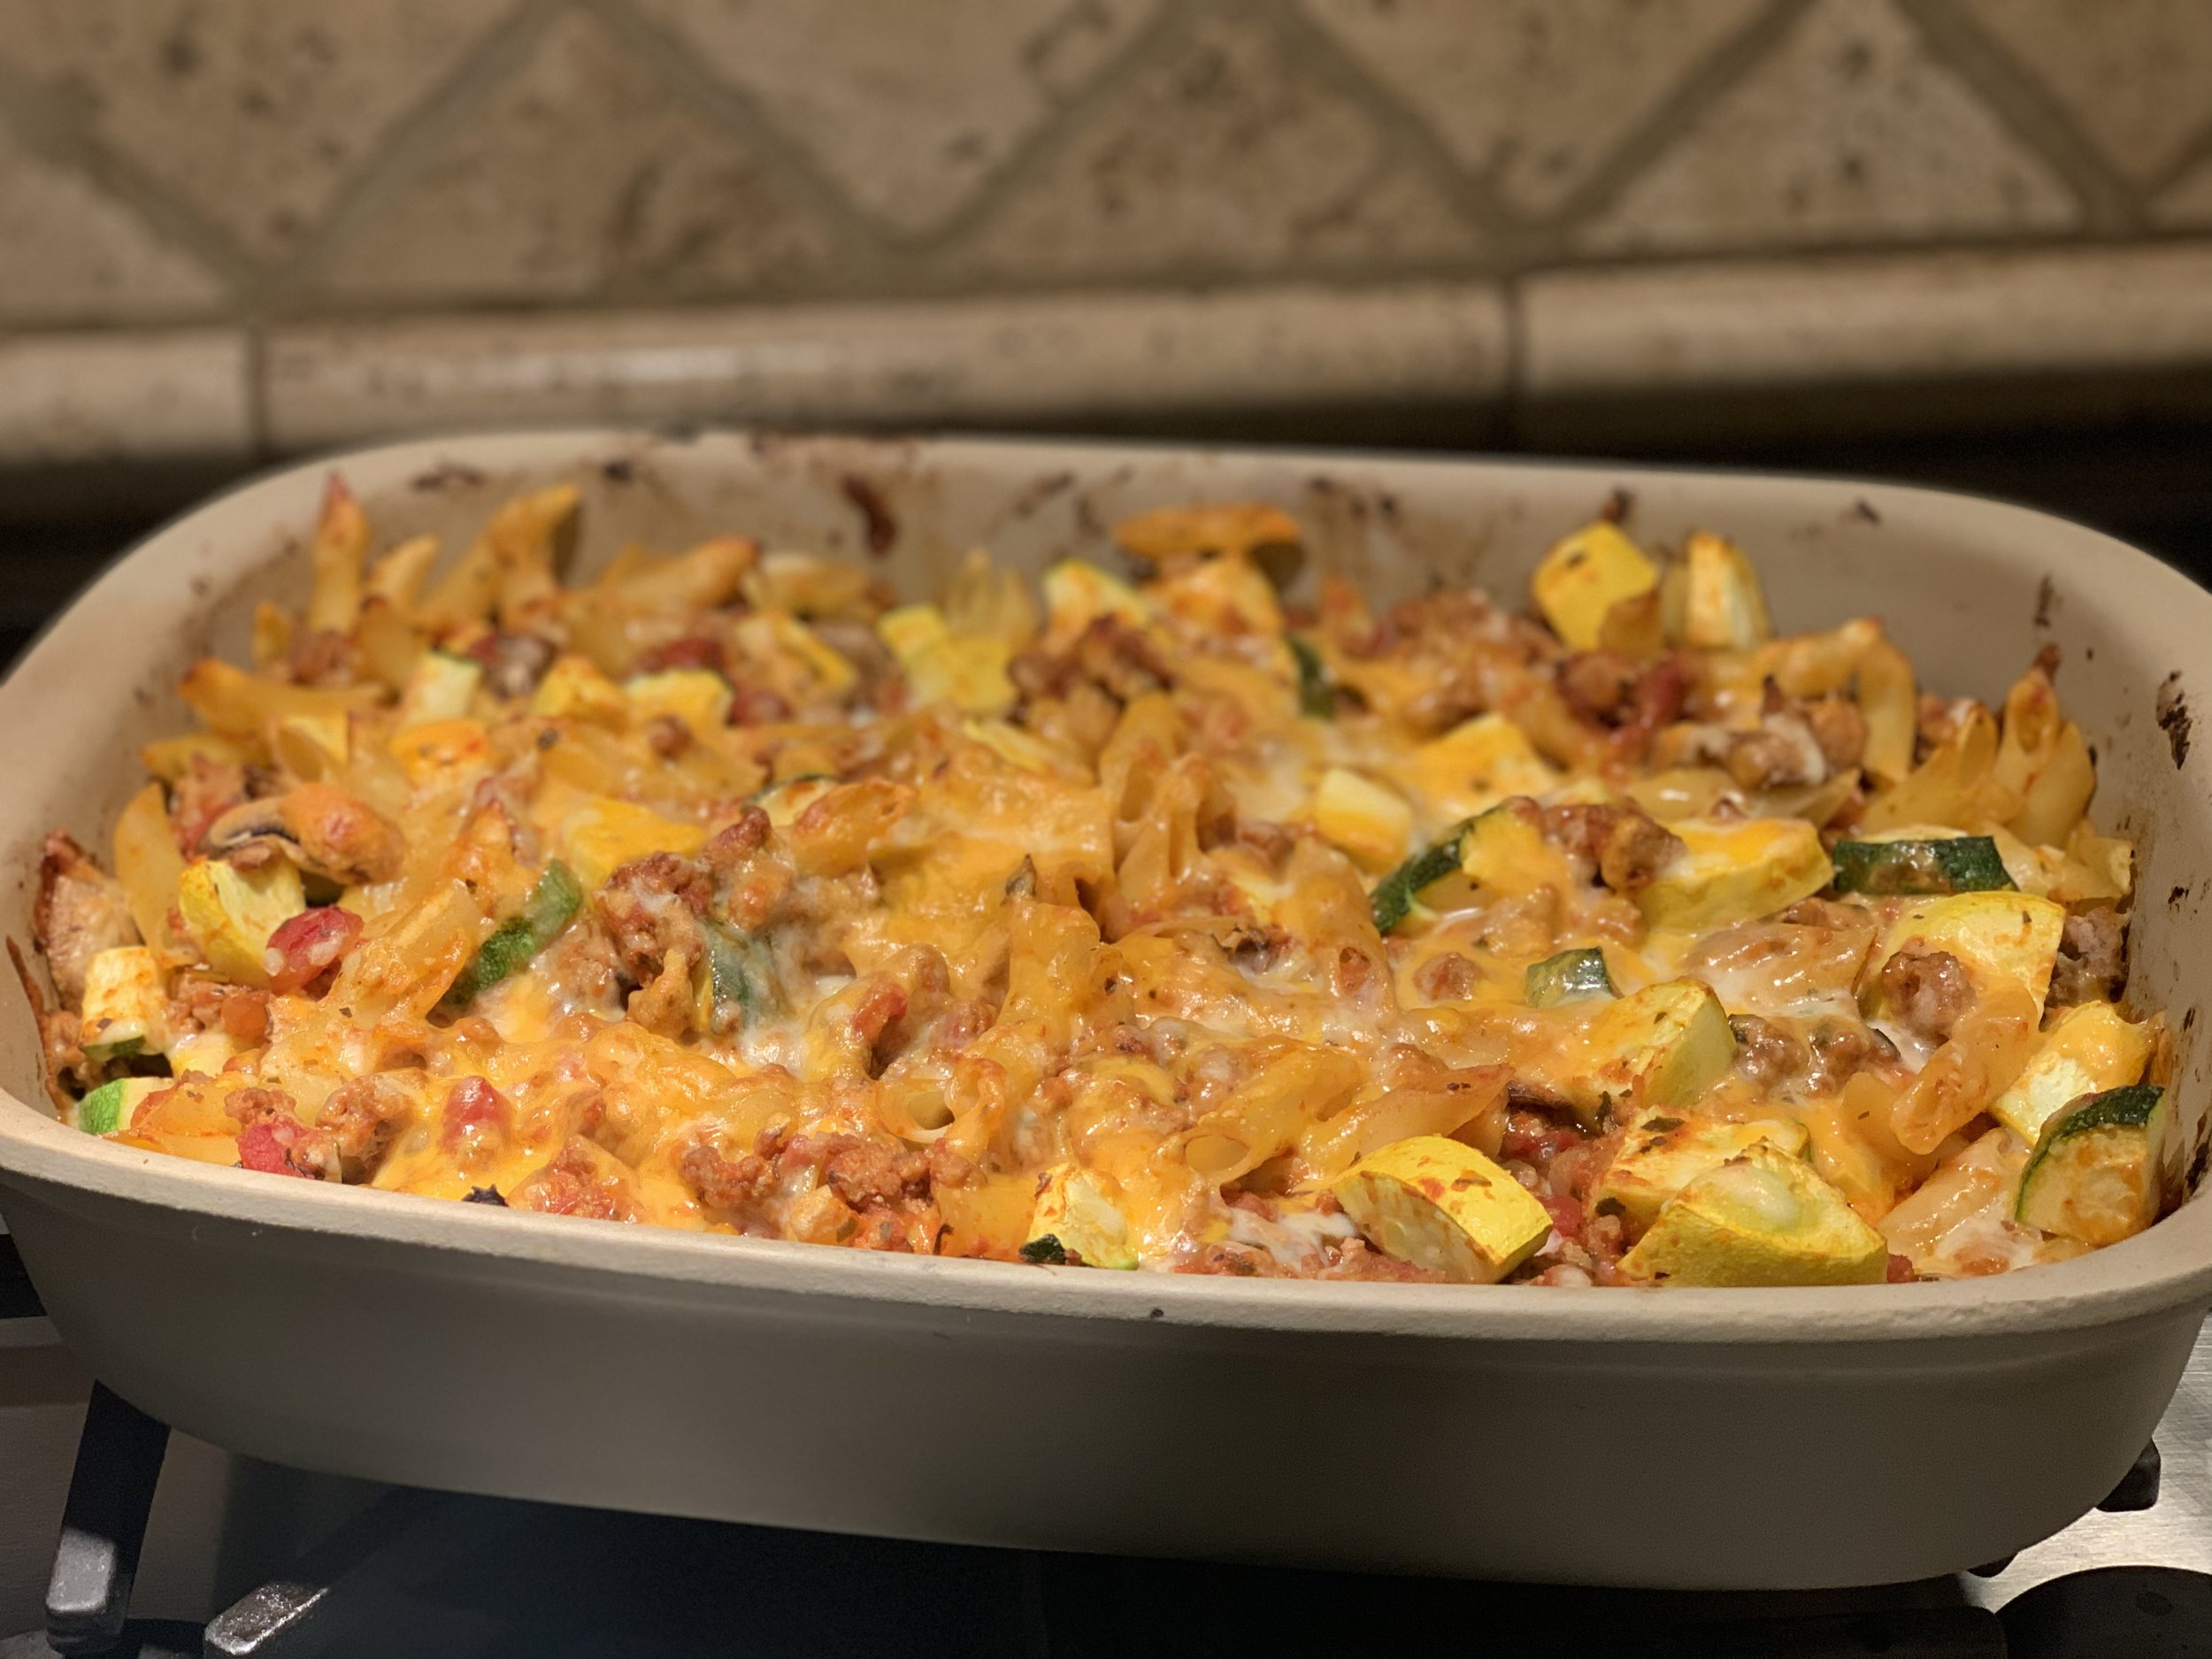 Easy Italian Pasta Bake with Turkey